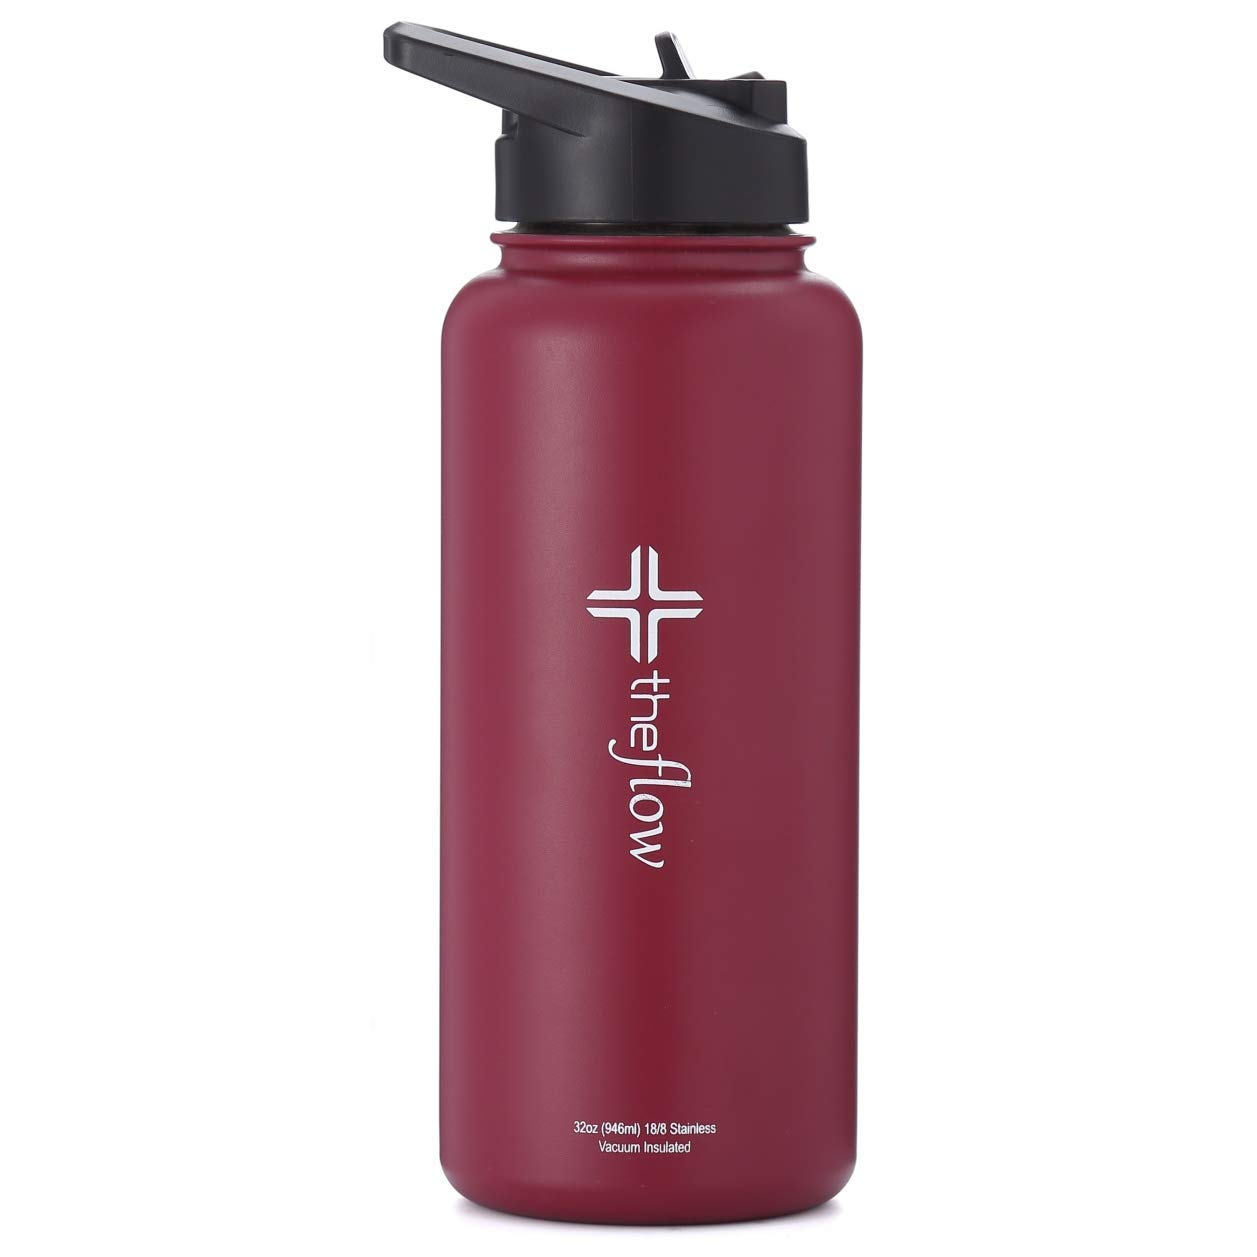 theflow Insulated Water Bottle Large 32oz Stainless Steel Hydro Vacuum Flask with Leakproof Straw Lid/Coffee Flip Lid/Carabiner Lid, Double Wall Sports & Travel Metal Modern Tumbler for Hot/Cold Drink